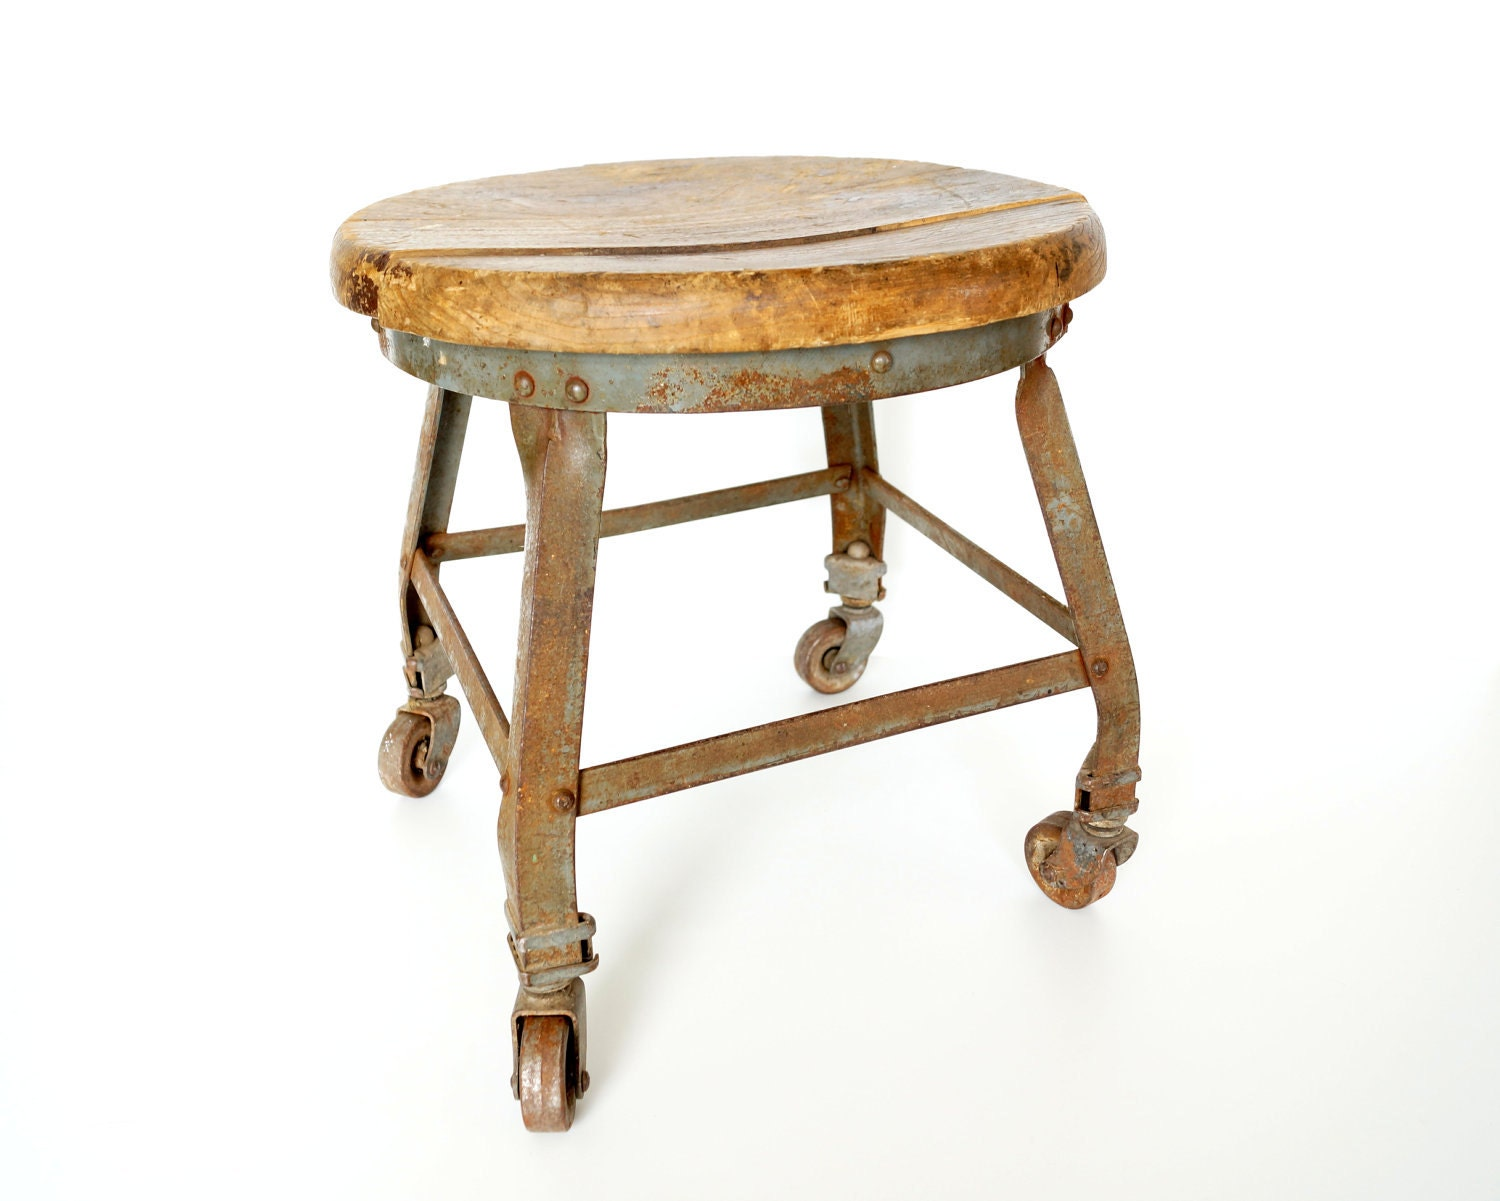 Antique Vintage Wood and Metal Stool on Casters Rustic